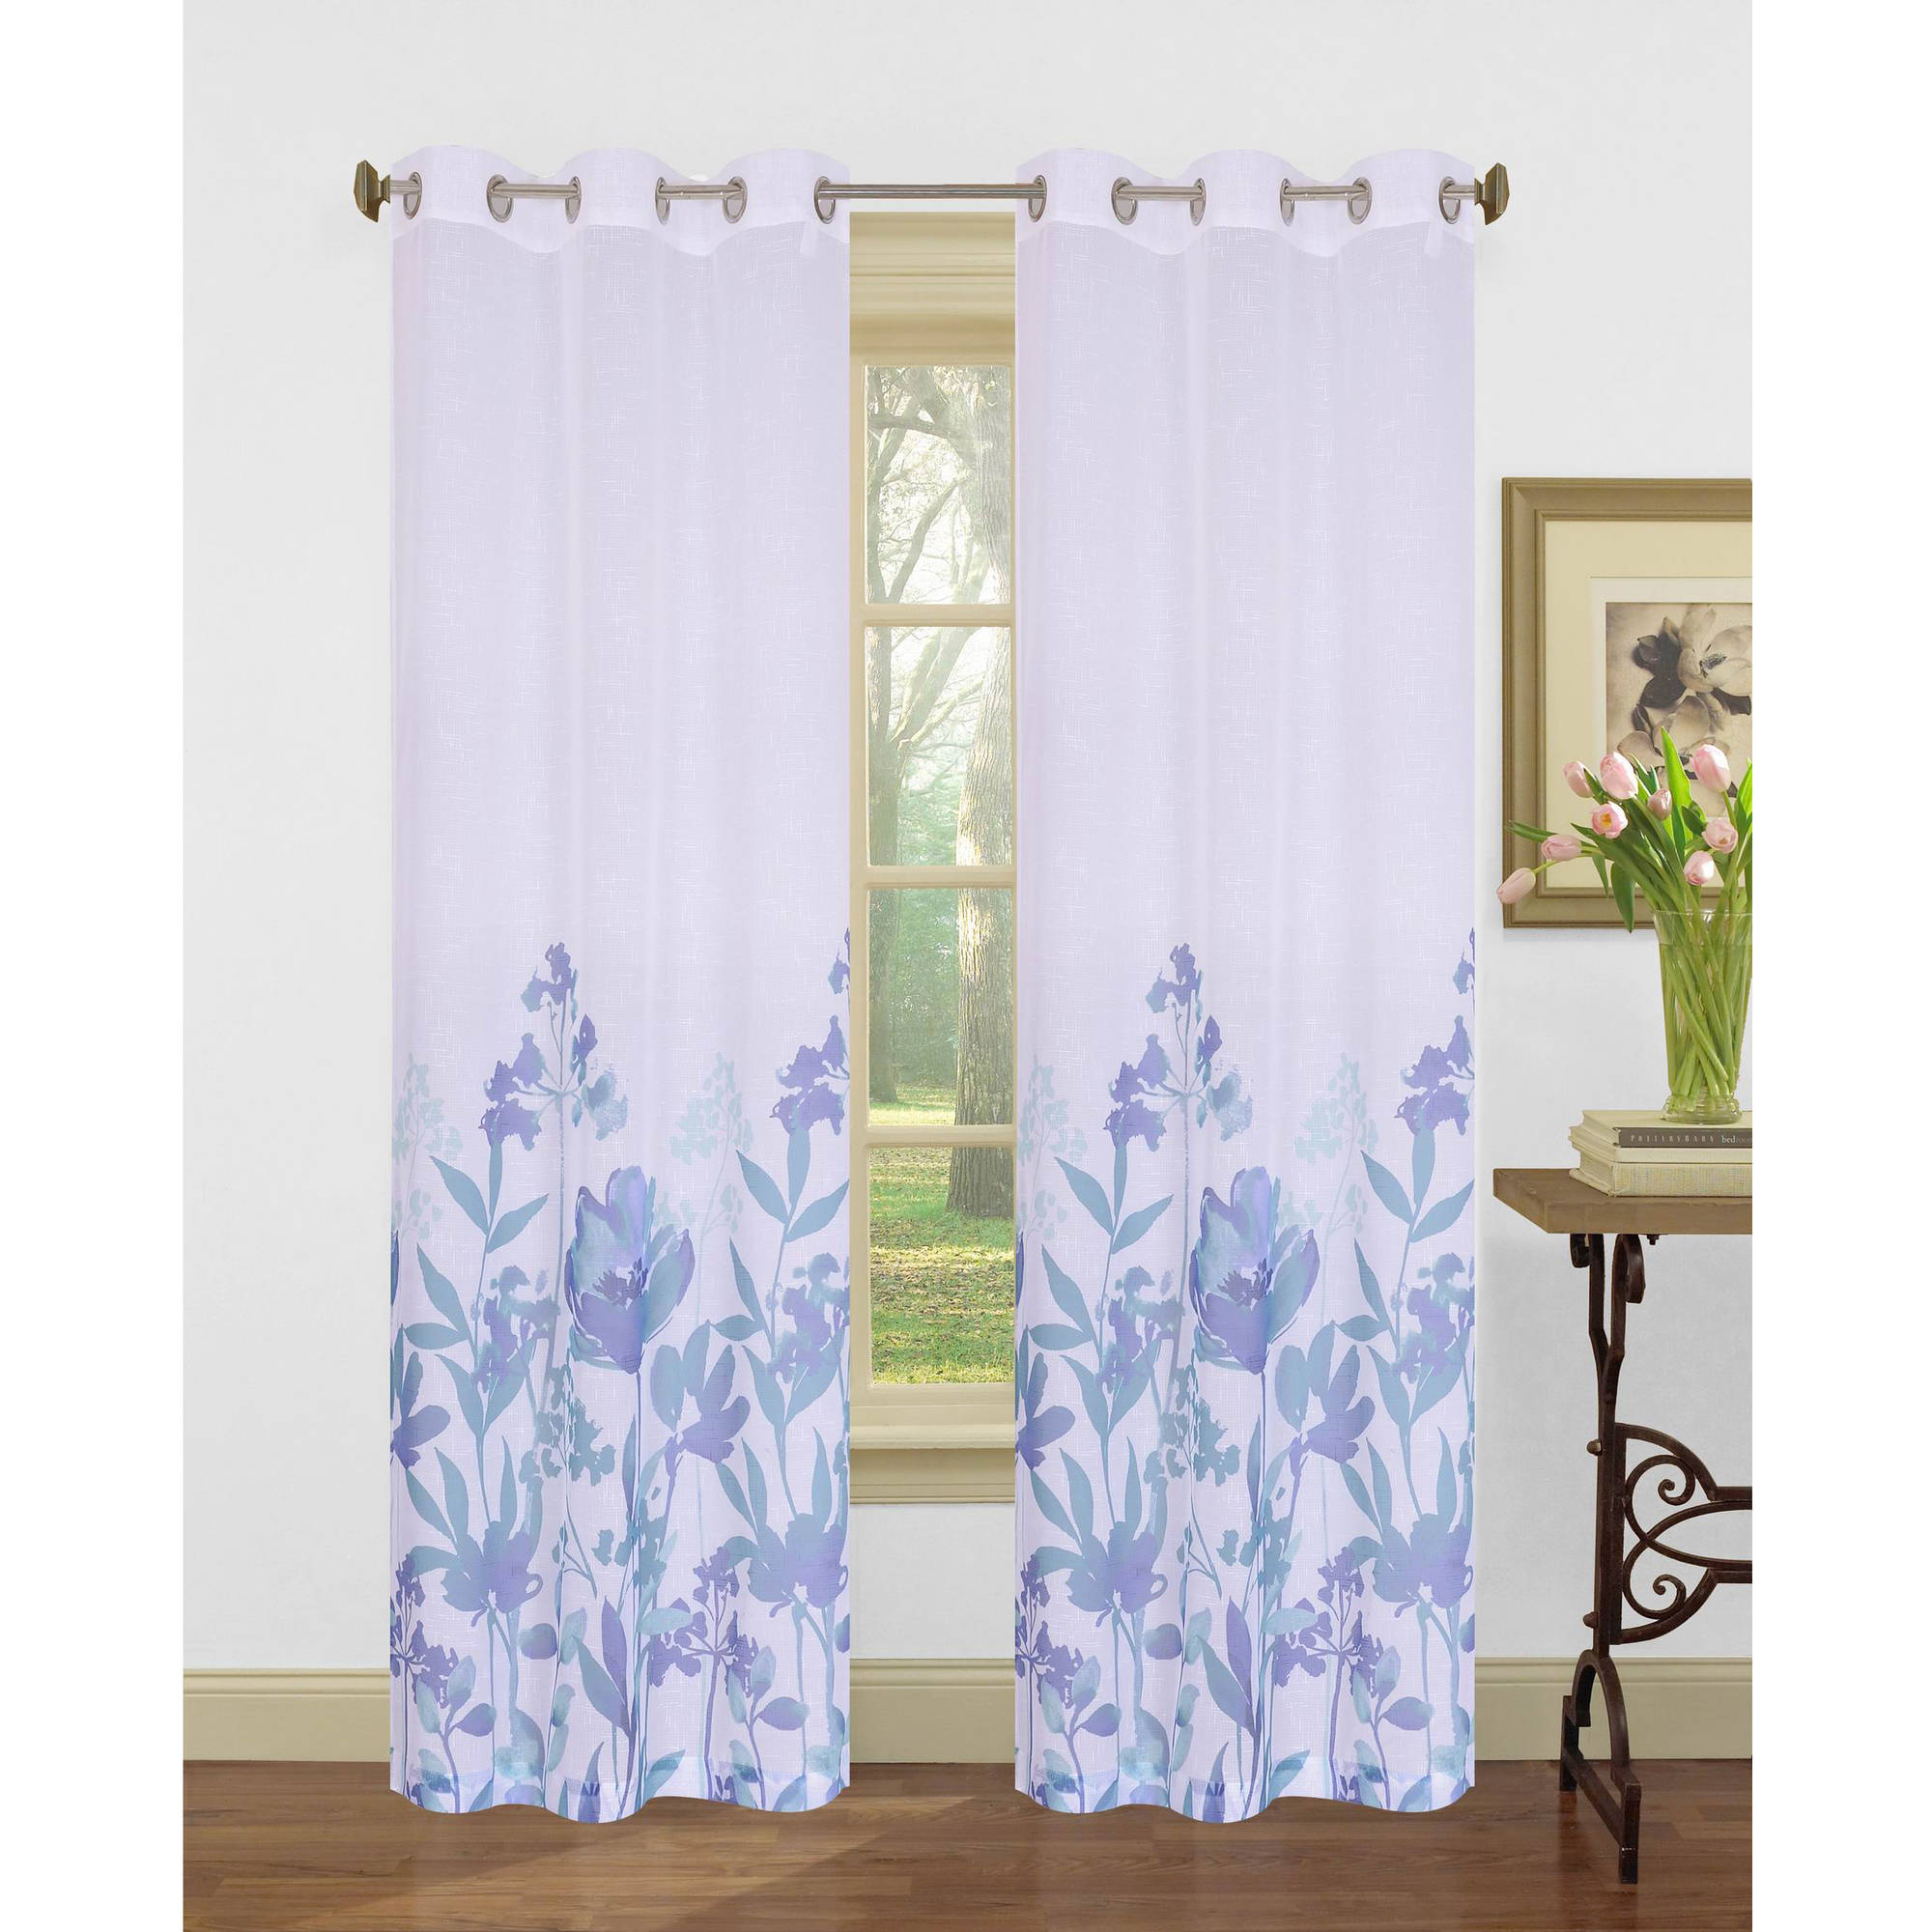 "Bella Flora 84"" Curtain Panel, Set of 2 by Generic"